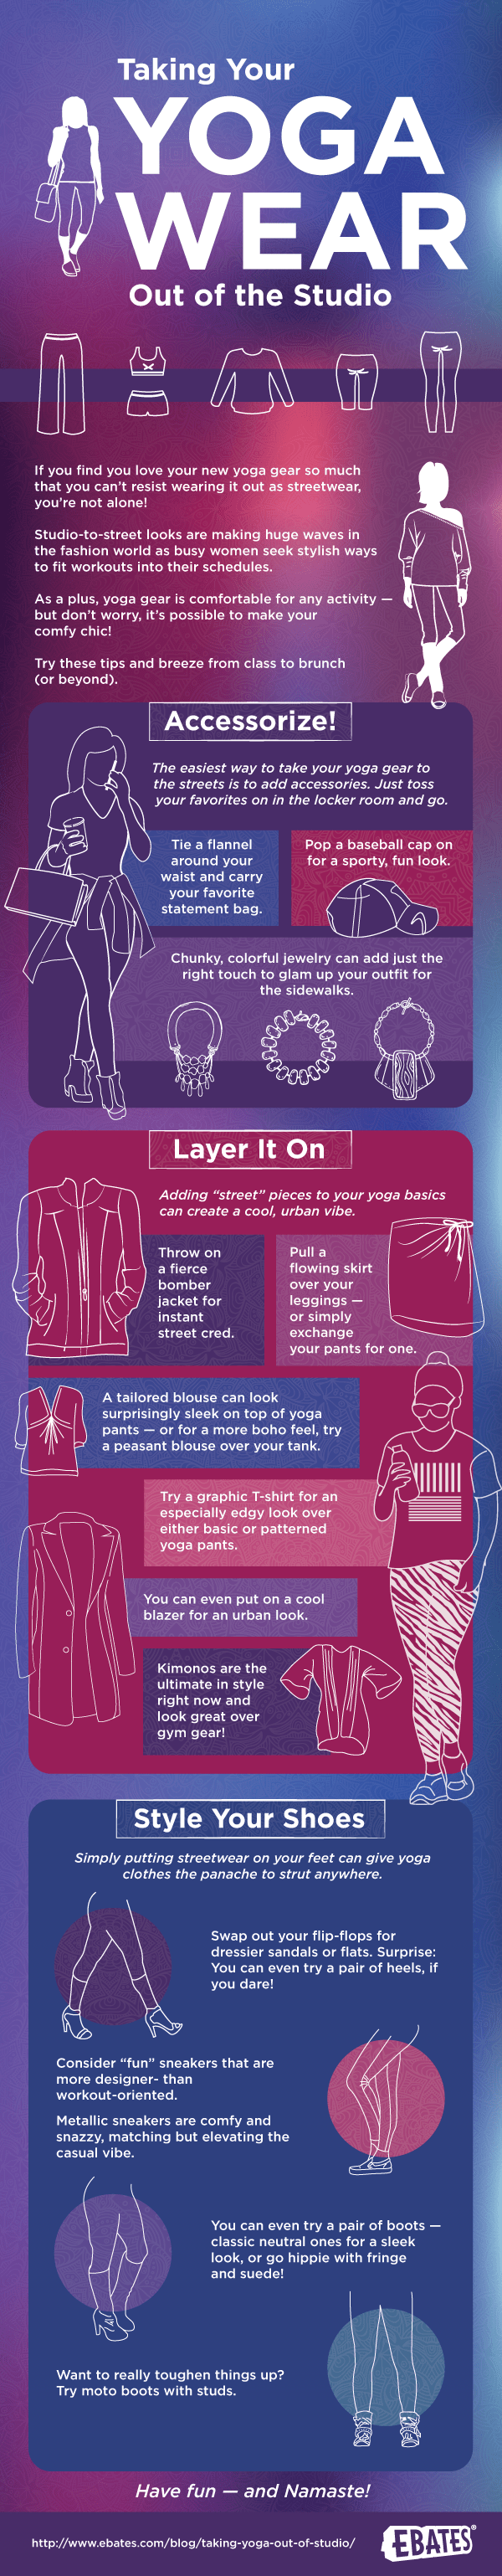 Taking Yoga Out of the Studio Infographic